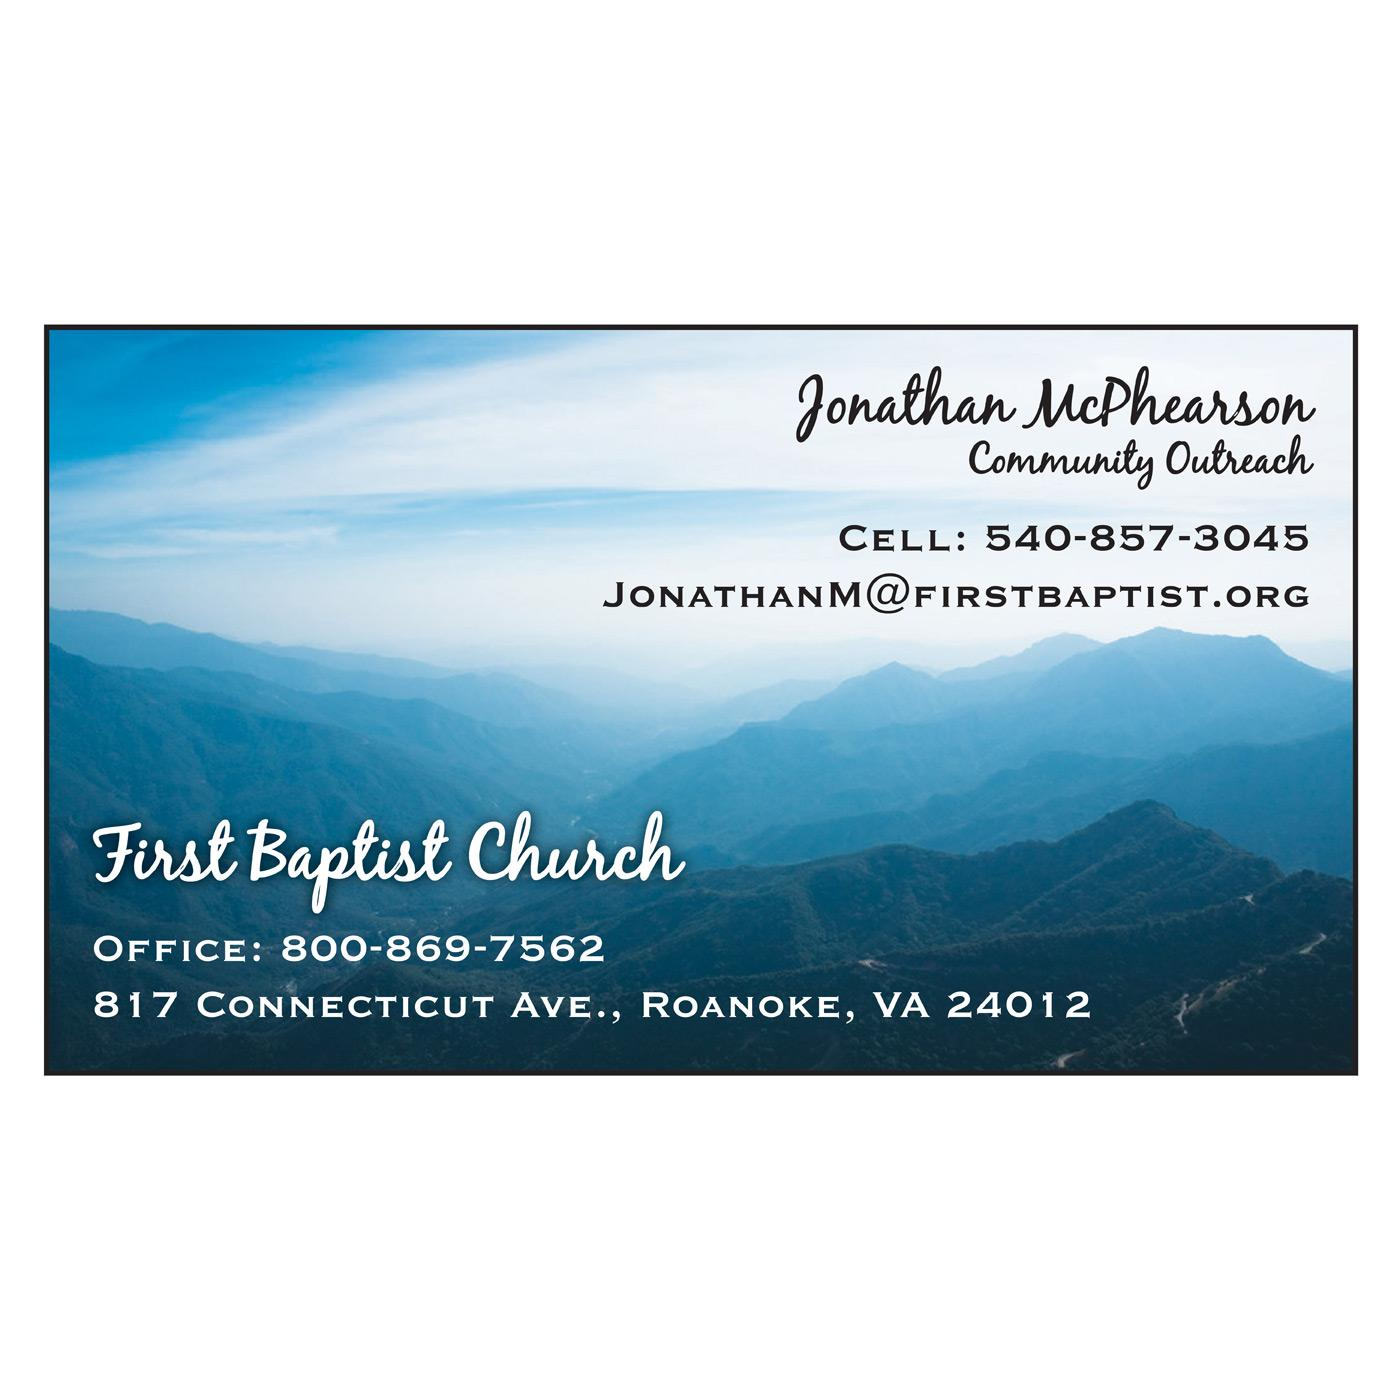 Church business card